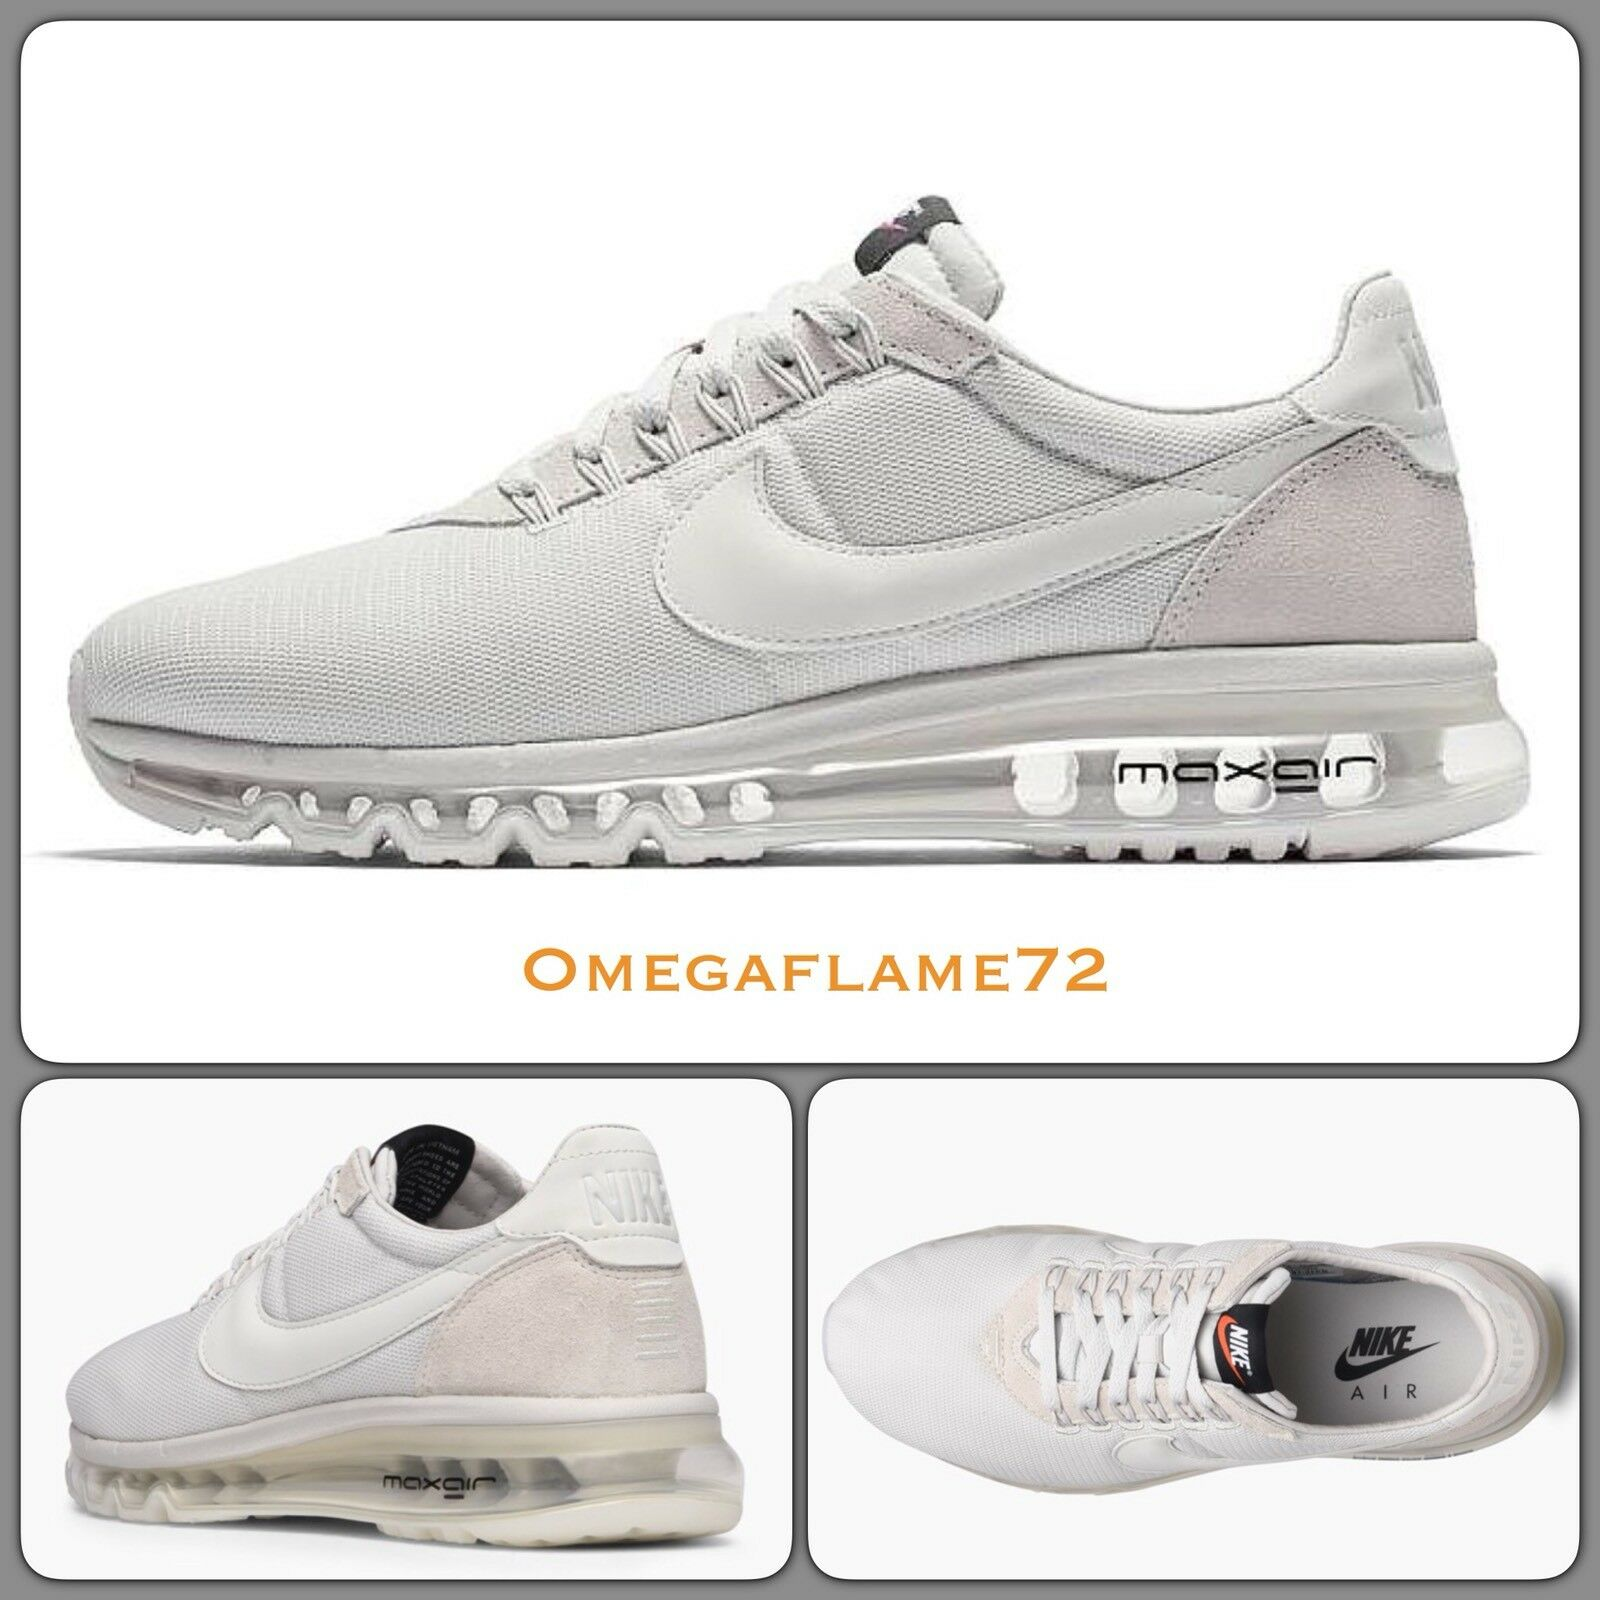 Nike Air Max LD ZERO, Bone Platinum , 848624-008 UK 10, EU 45, US 11